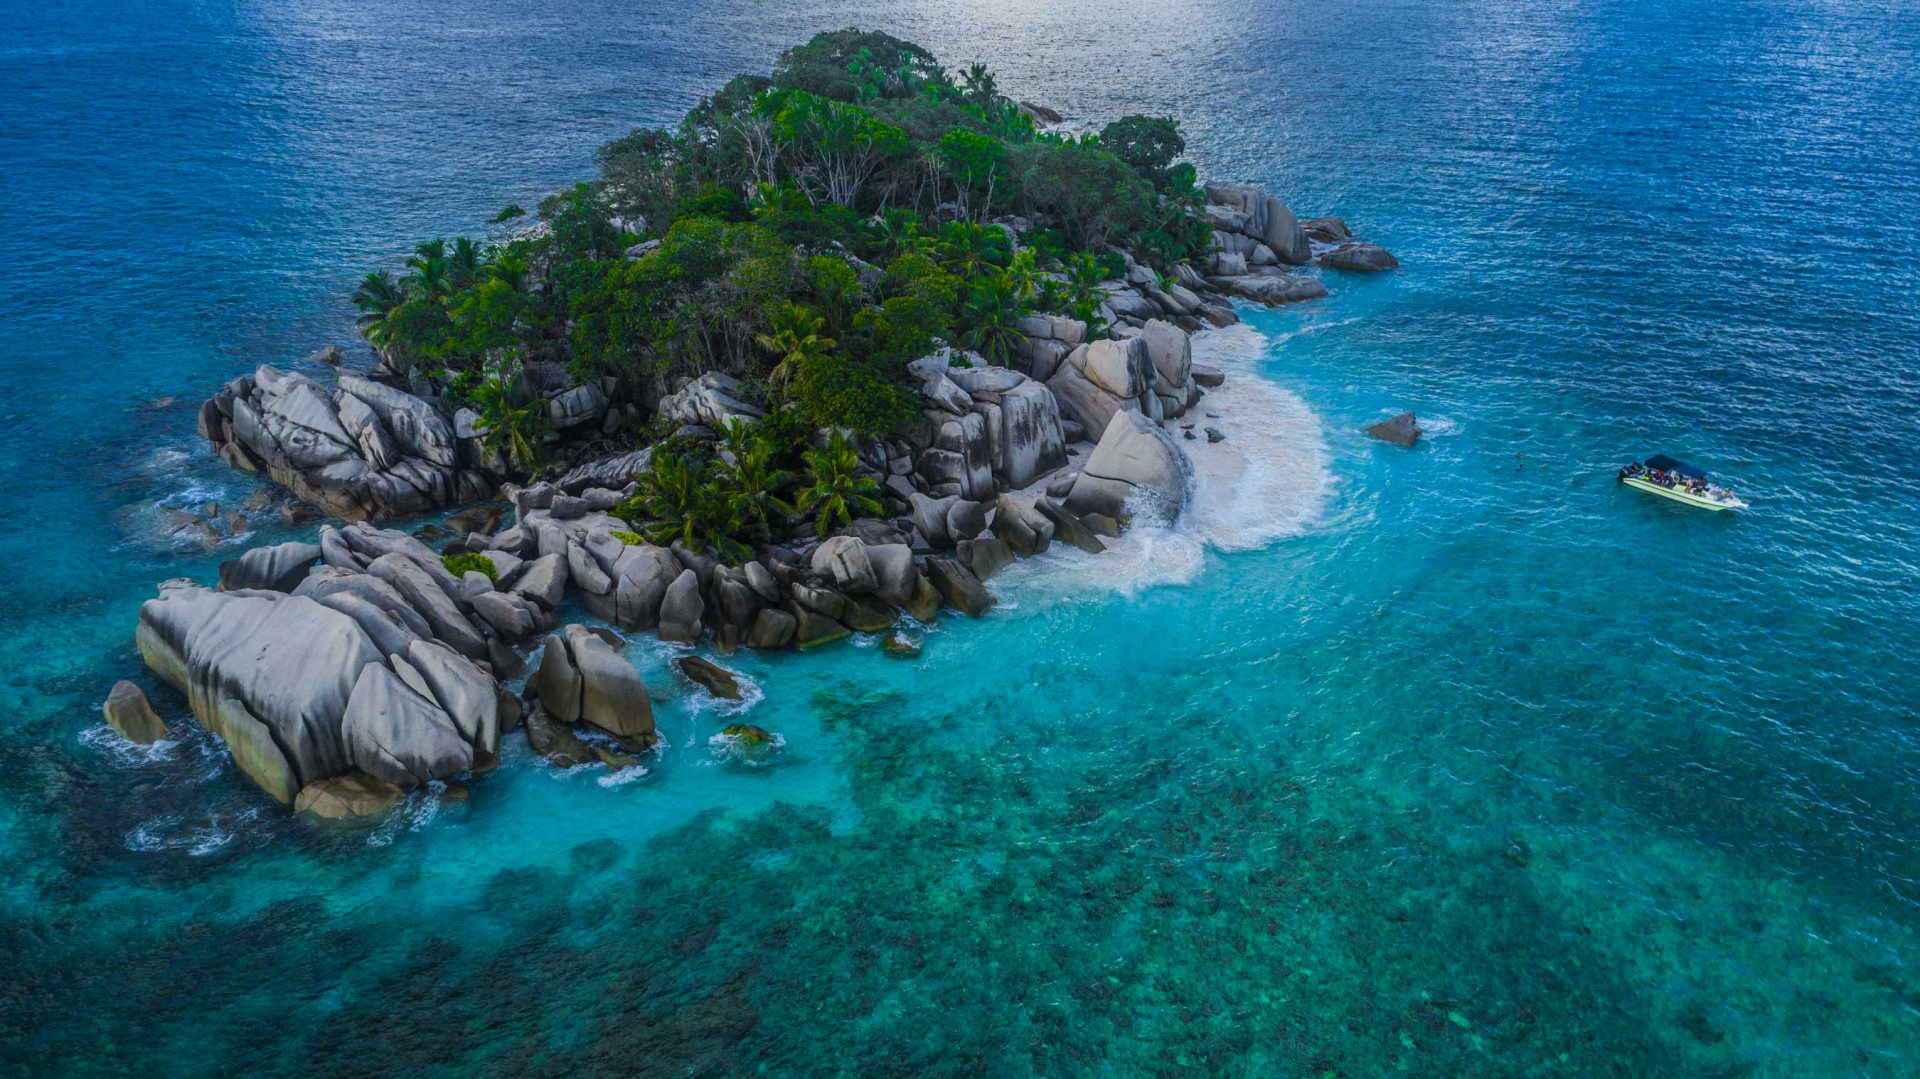 Seychelles Coco Island Isla drone aerial view enrico pescantini from above 2